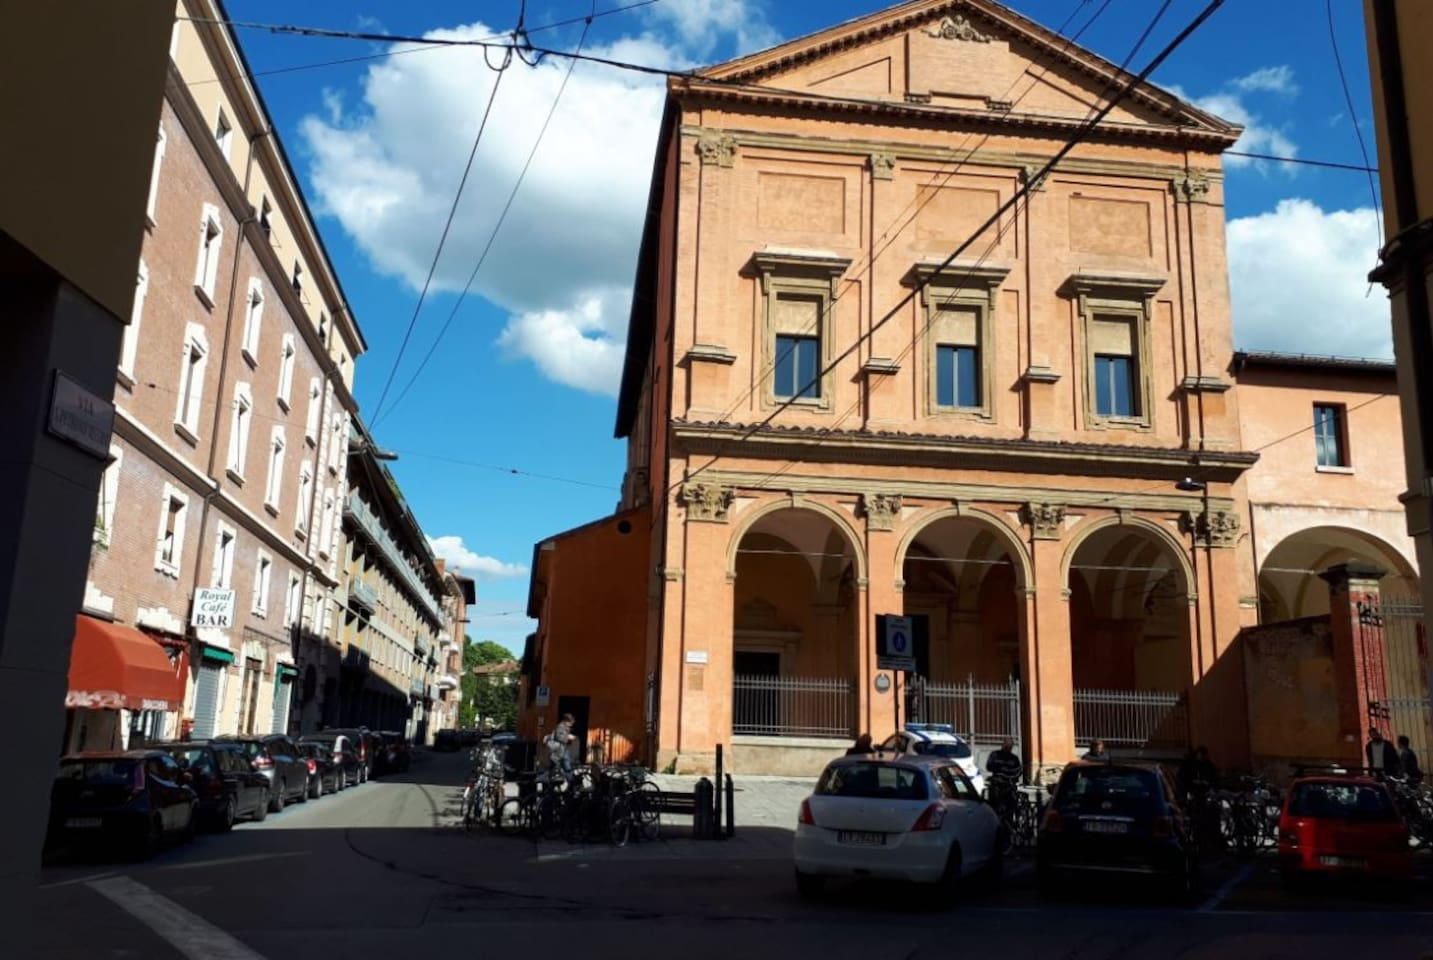 Just 1' from the appartement, the beautifl Academy of Fine Arts. Our street is residential, quiet and full of beautiful historical buildings such as this. There is, also, an espresso coffee place, just across the street, as well as all the amenities